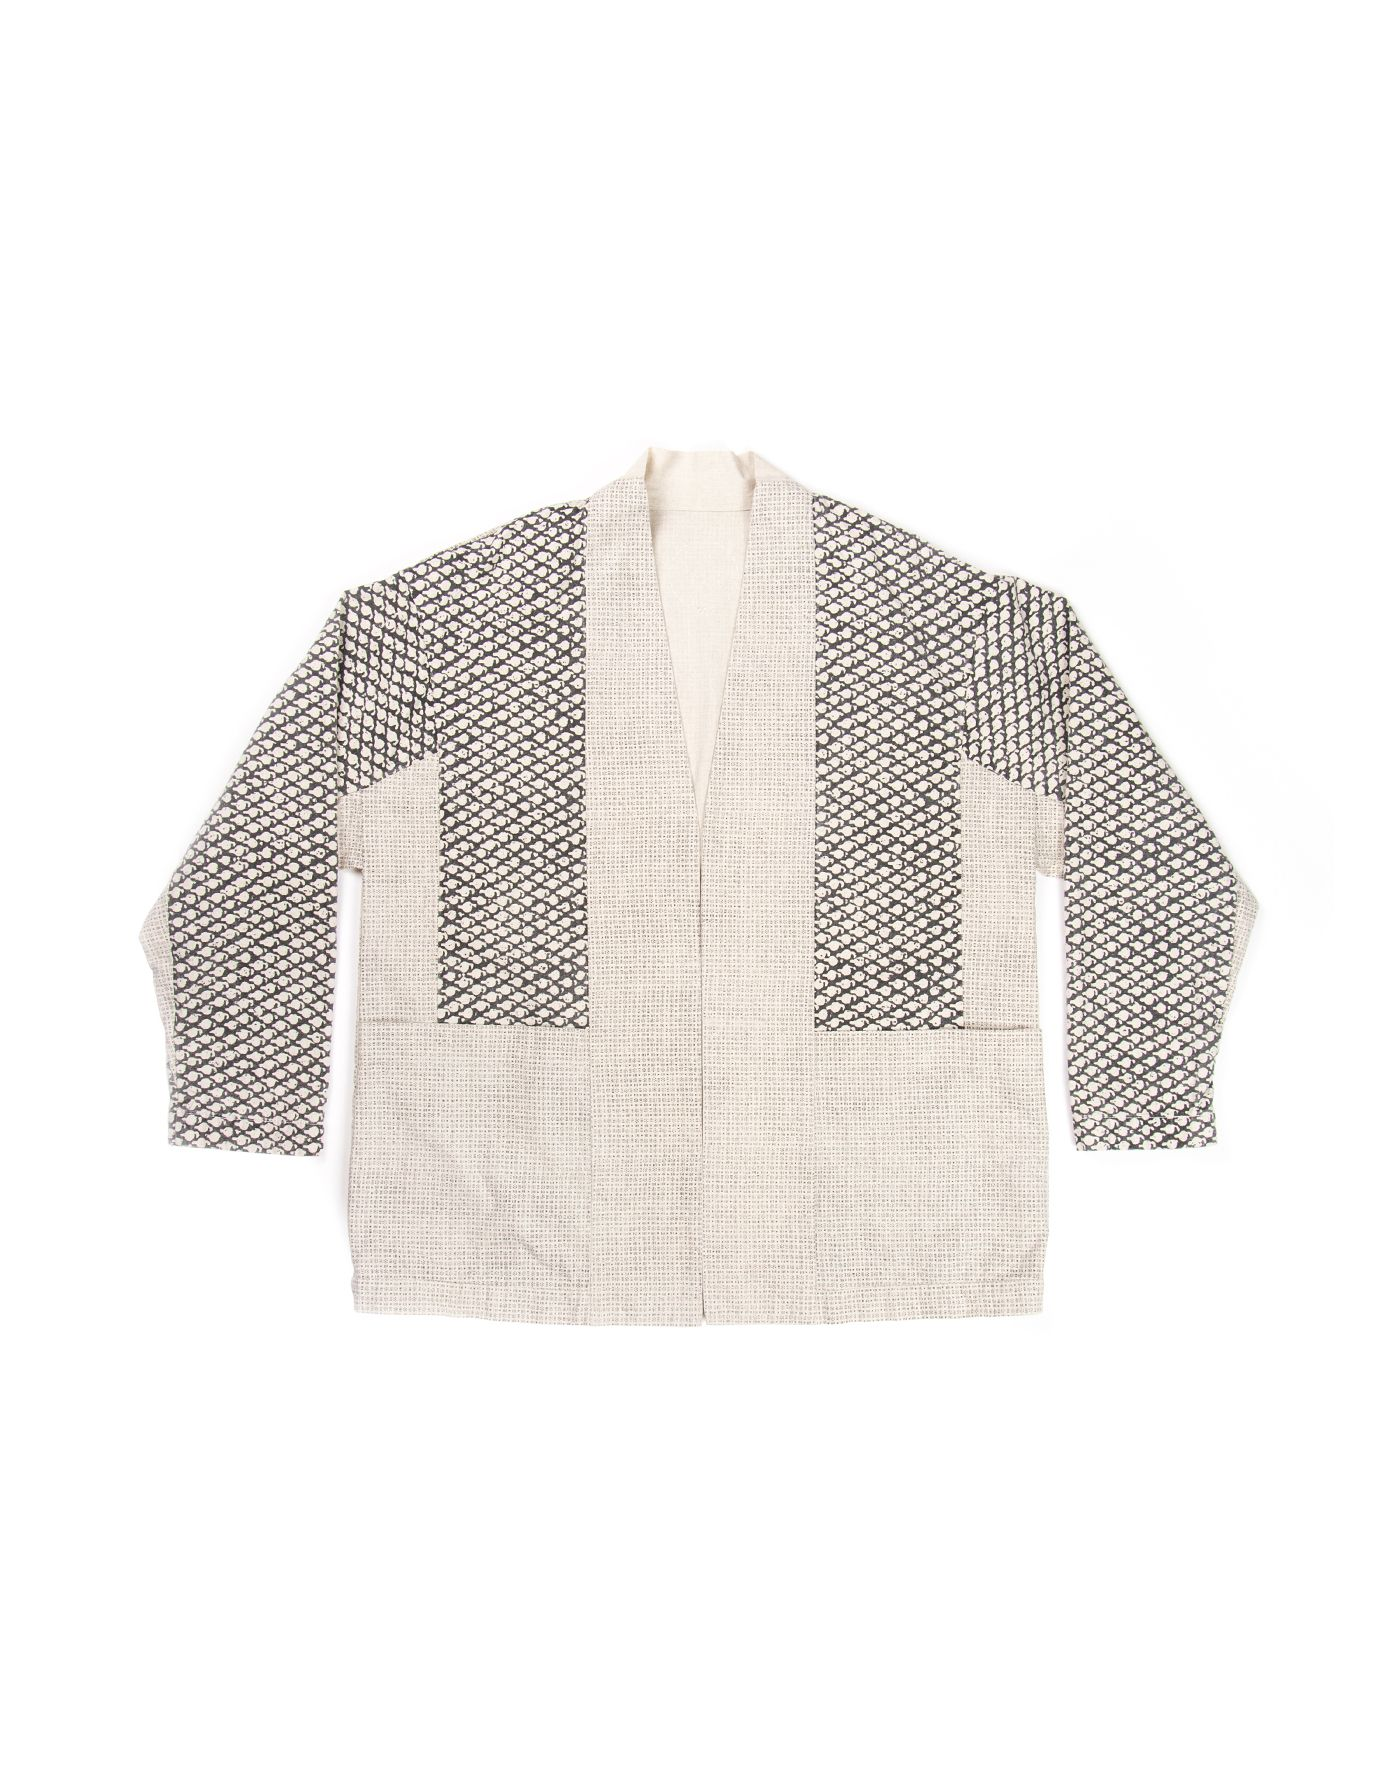 Center for COSMIC WONDER Online Store] Canvas haori jacket | Once In ...